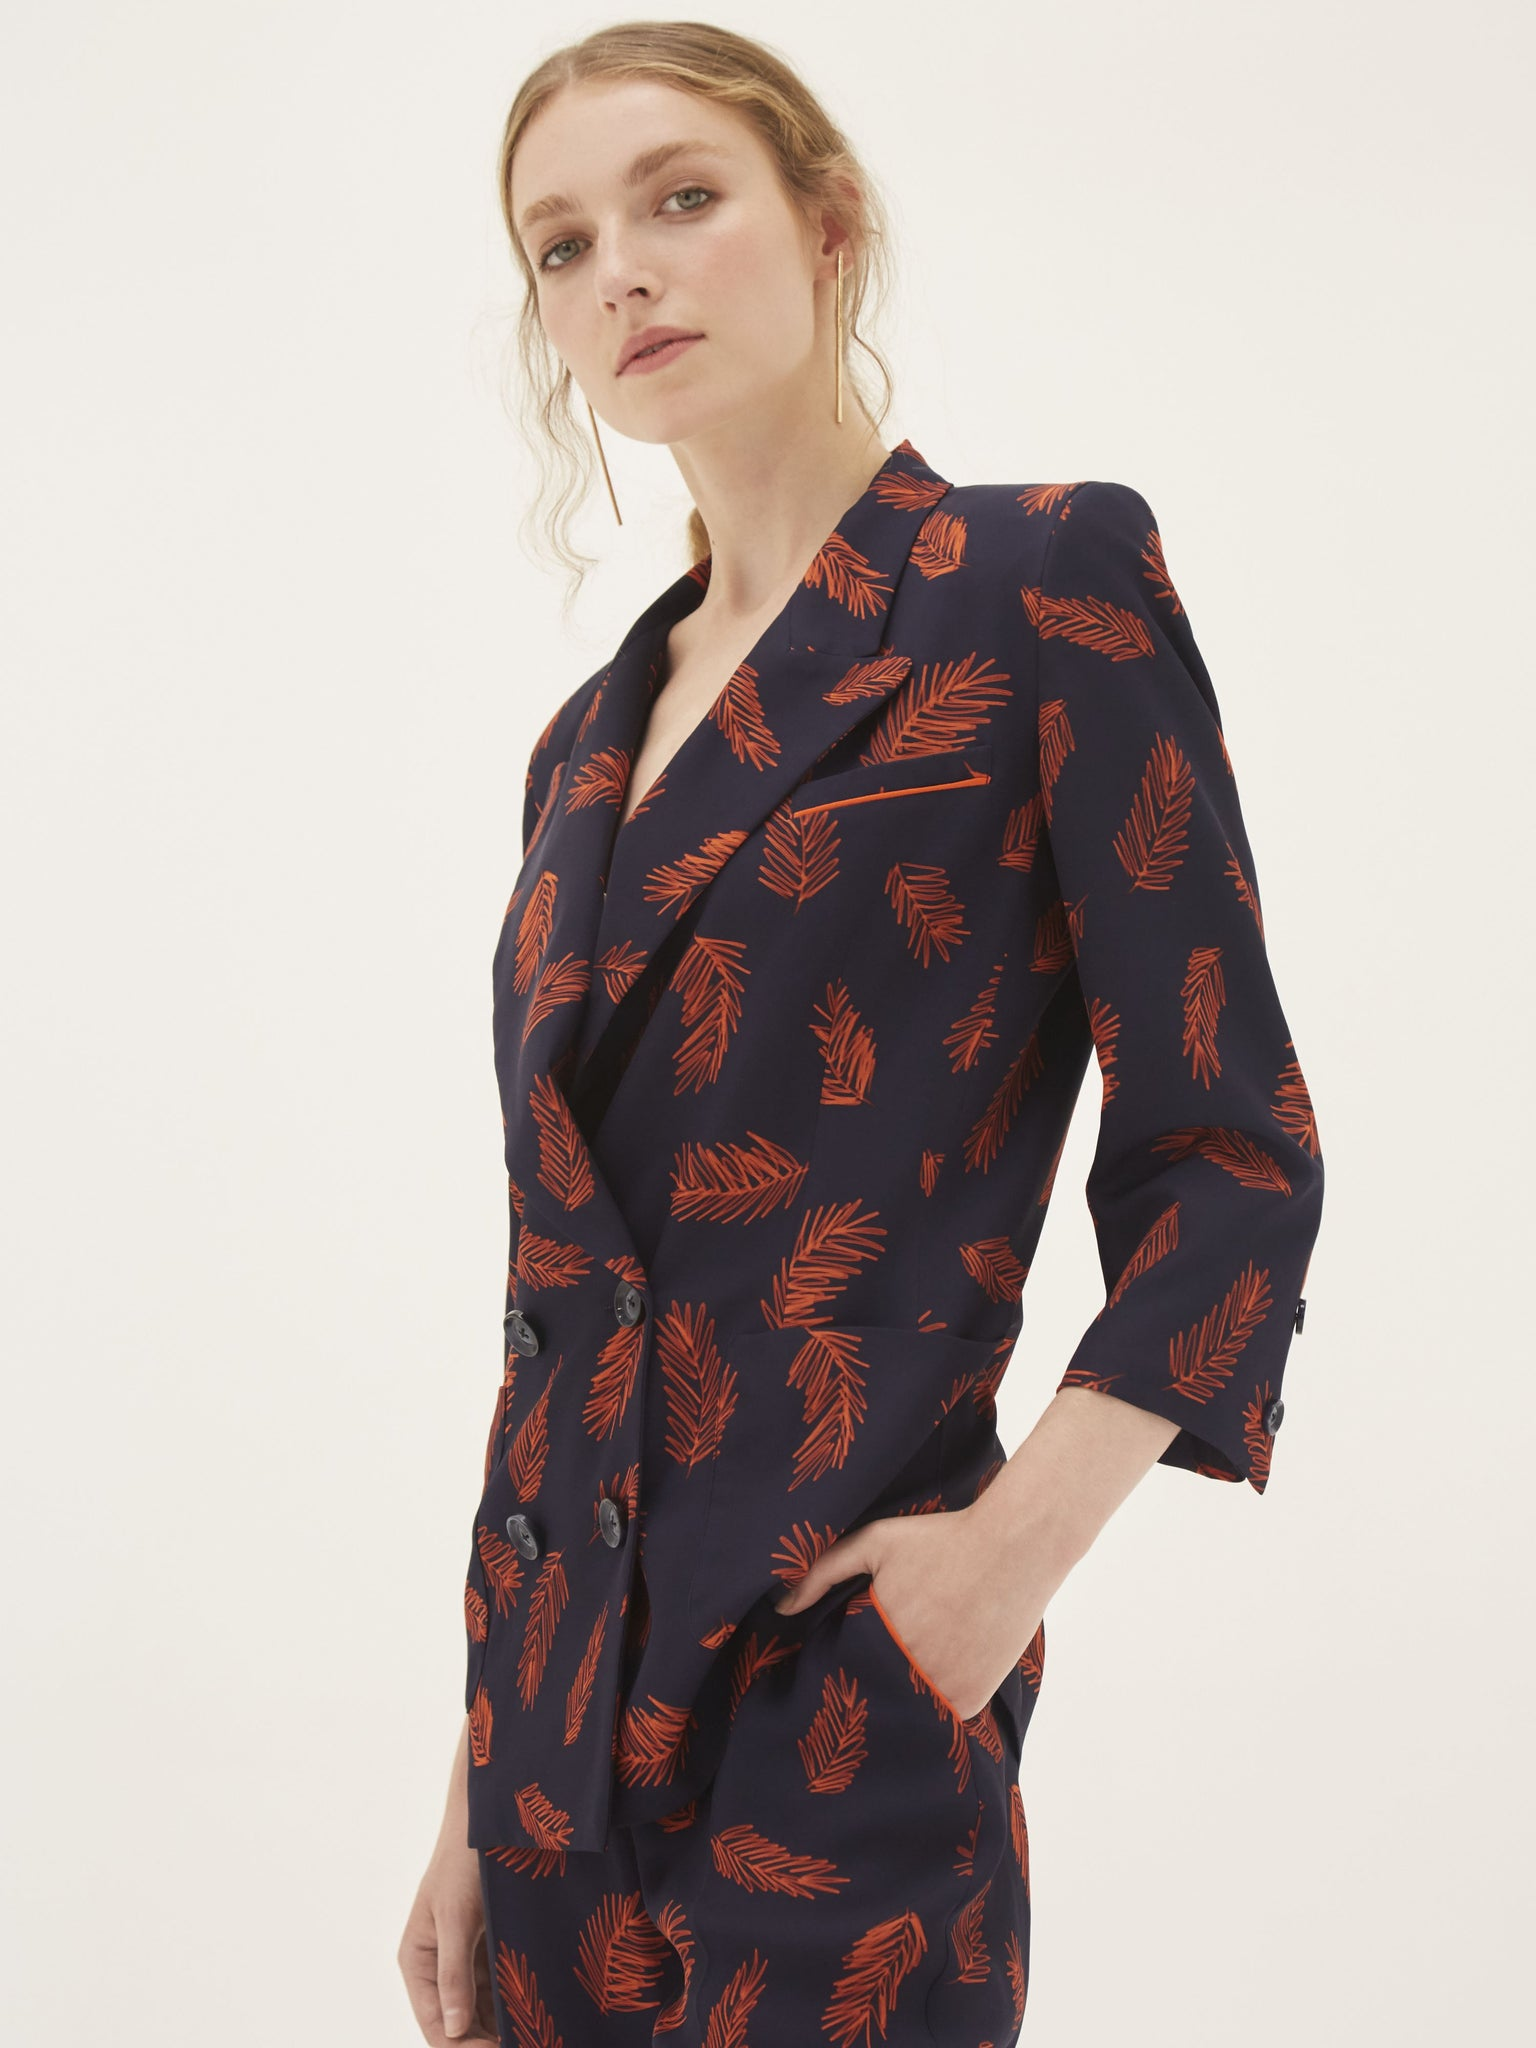 Double Breasted Blazer - Signature Manuka Feather Print